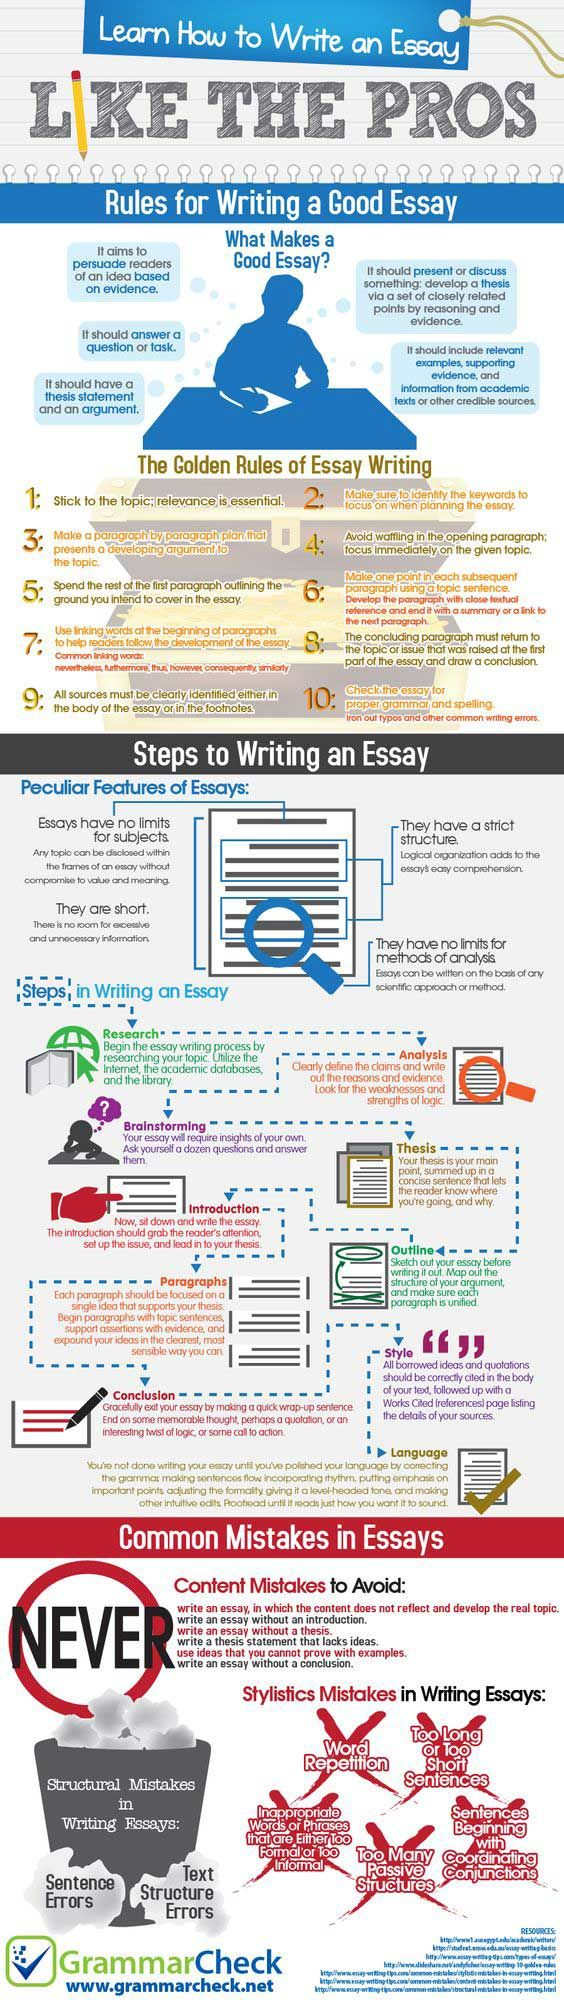 best essay writer ideas life essay  18 infographics that will teach you how to write an a research paper or essay